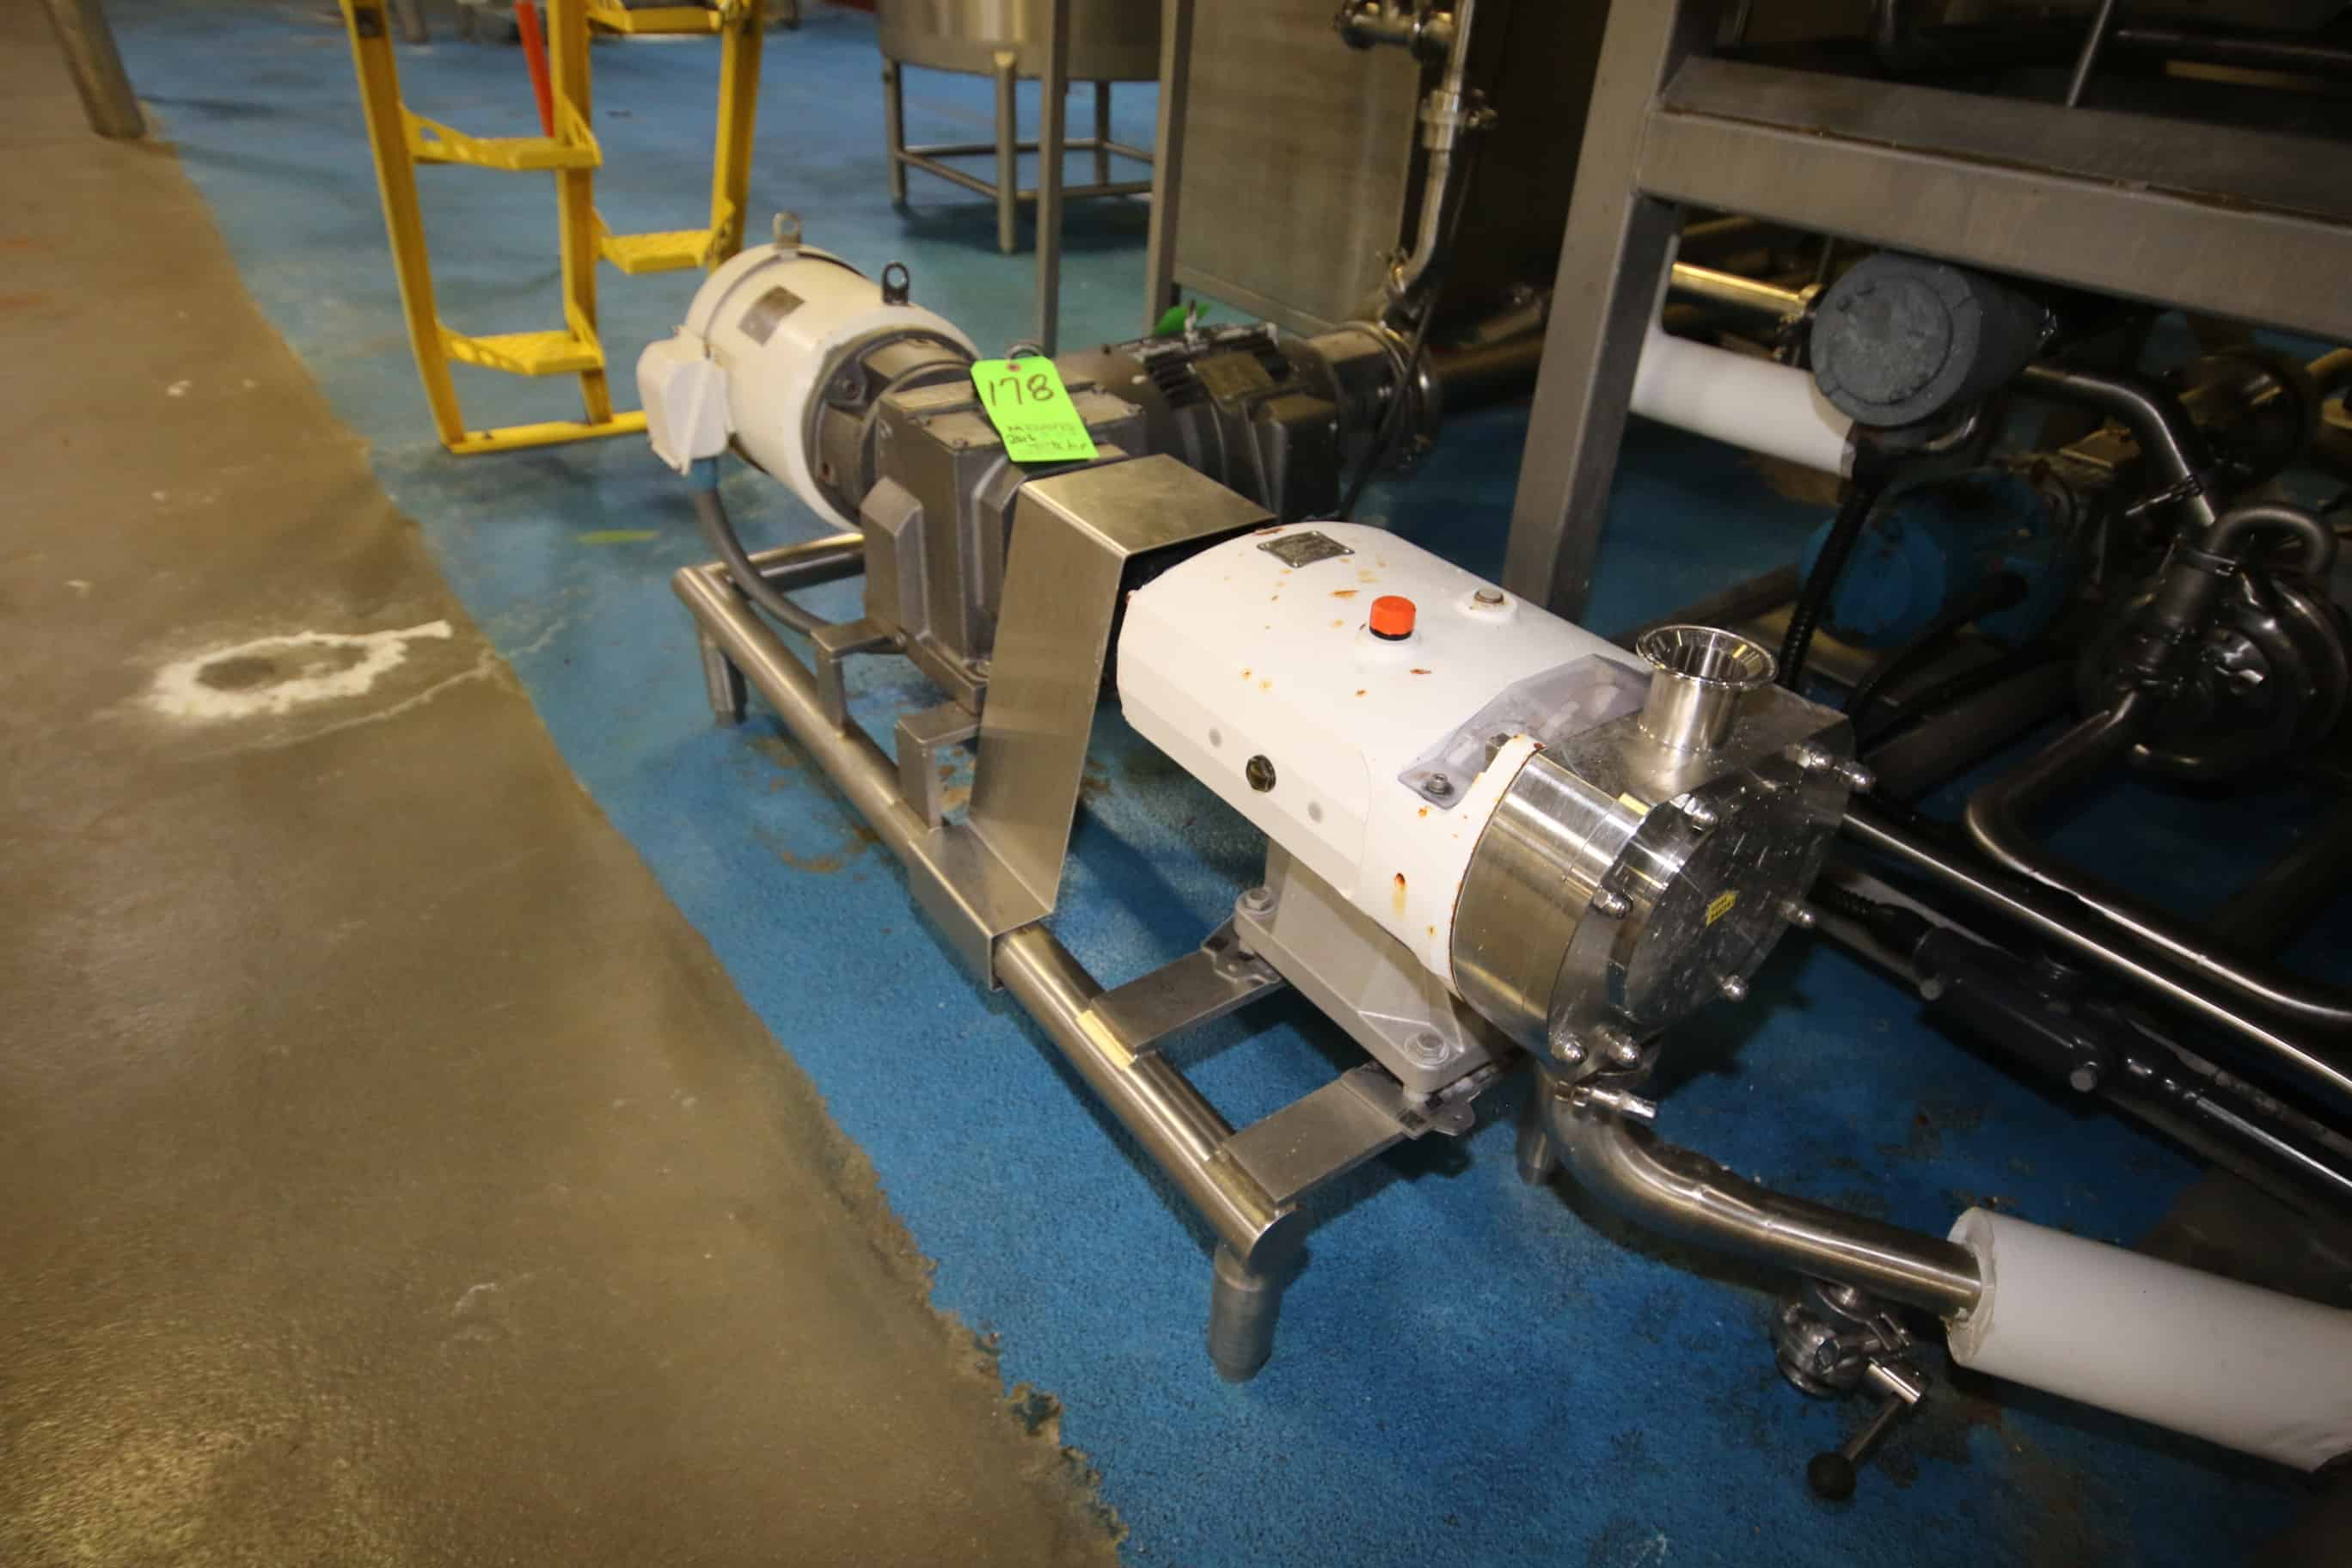 "2016 Alfa Laval 7.5 hp Positive Displacement Pump, Type SRU4/SS/HS, S/N 147160 with 2"" S/S Clamp Type Head and Sterling 1770 RPM Motor, 208-230/460 V, 3 Phase, Mounted on S/S Stand"